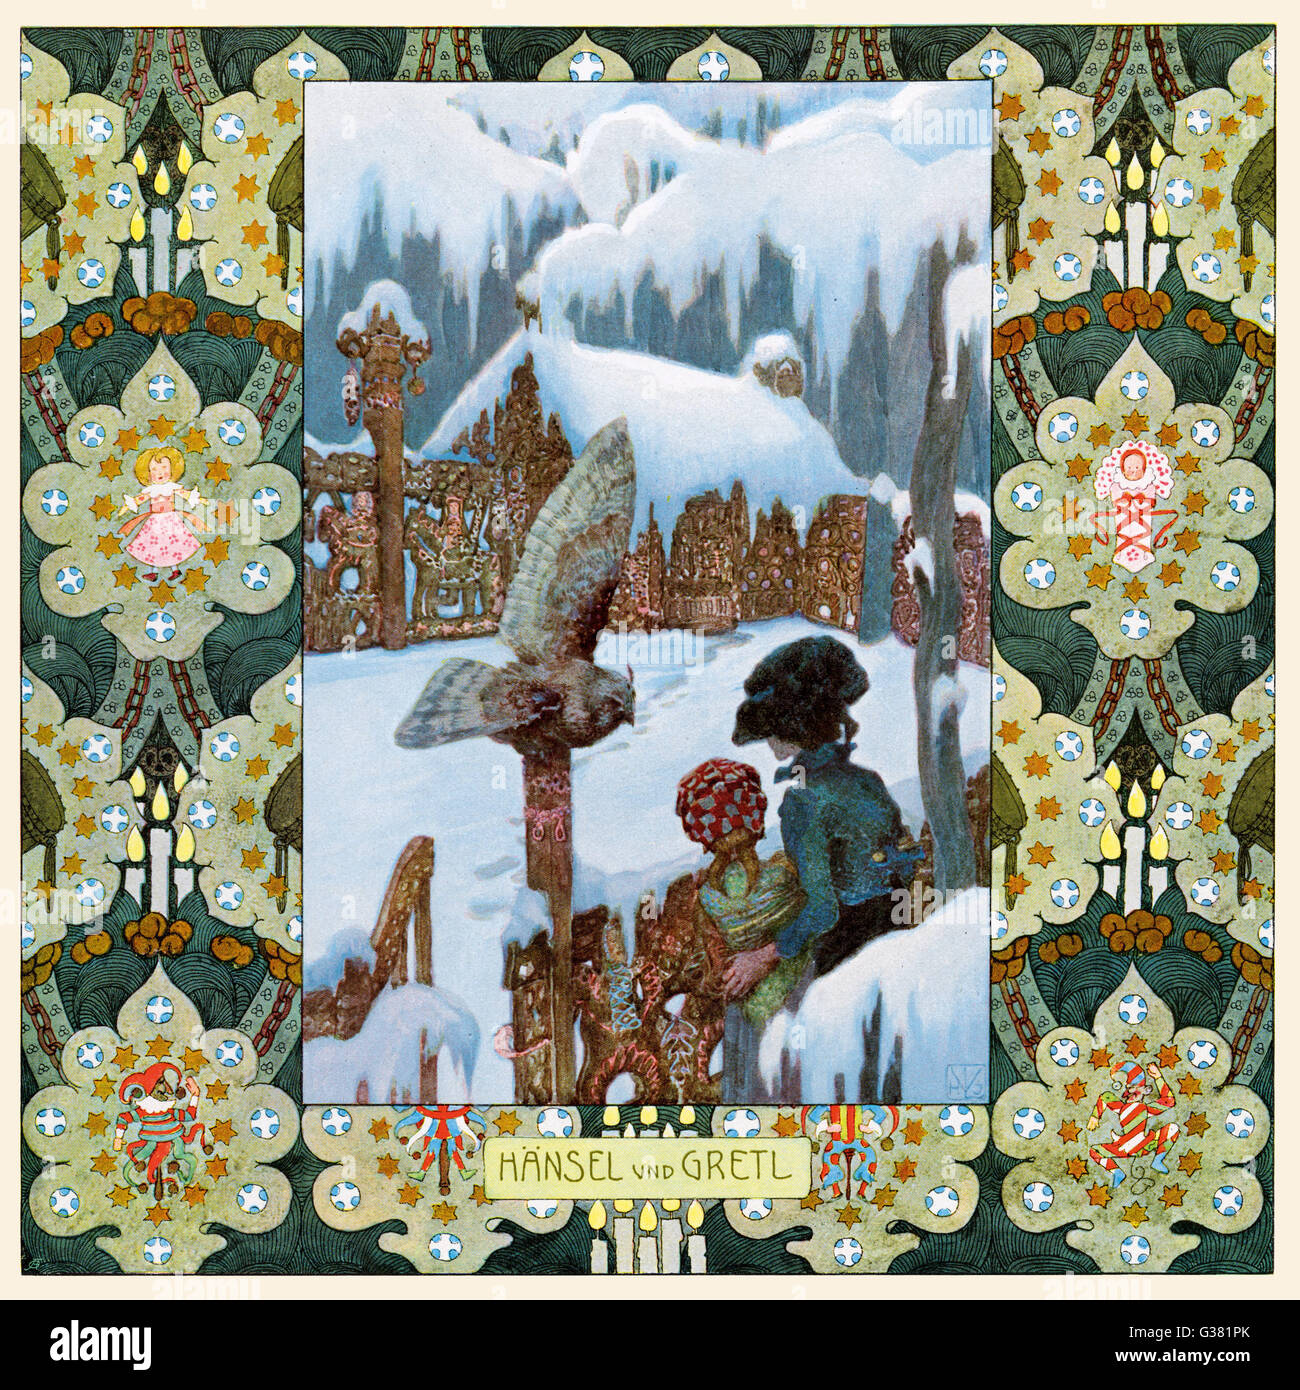 Fairytale - Hansel and Gretel - (Brothers Grimm) - Stock Image